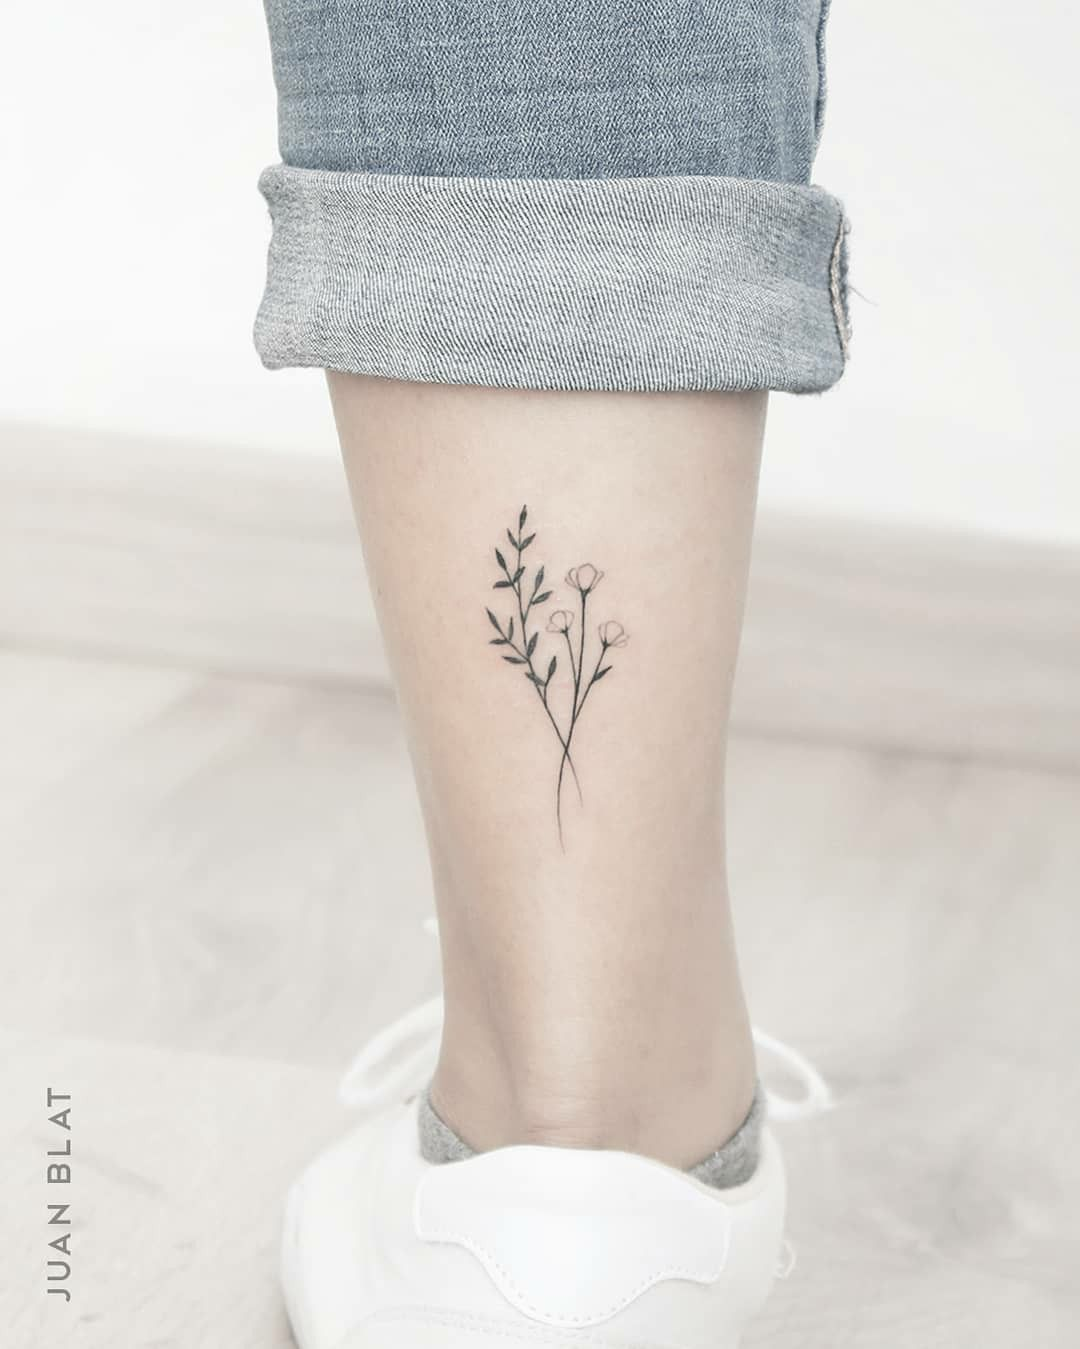 Tattoos Uniquetattoos Bodyarttatoos In 2020 Tattoos Small Tattoos Ankle Tattoo Small